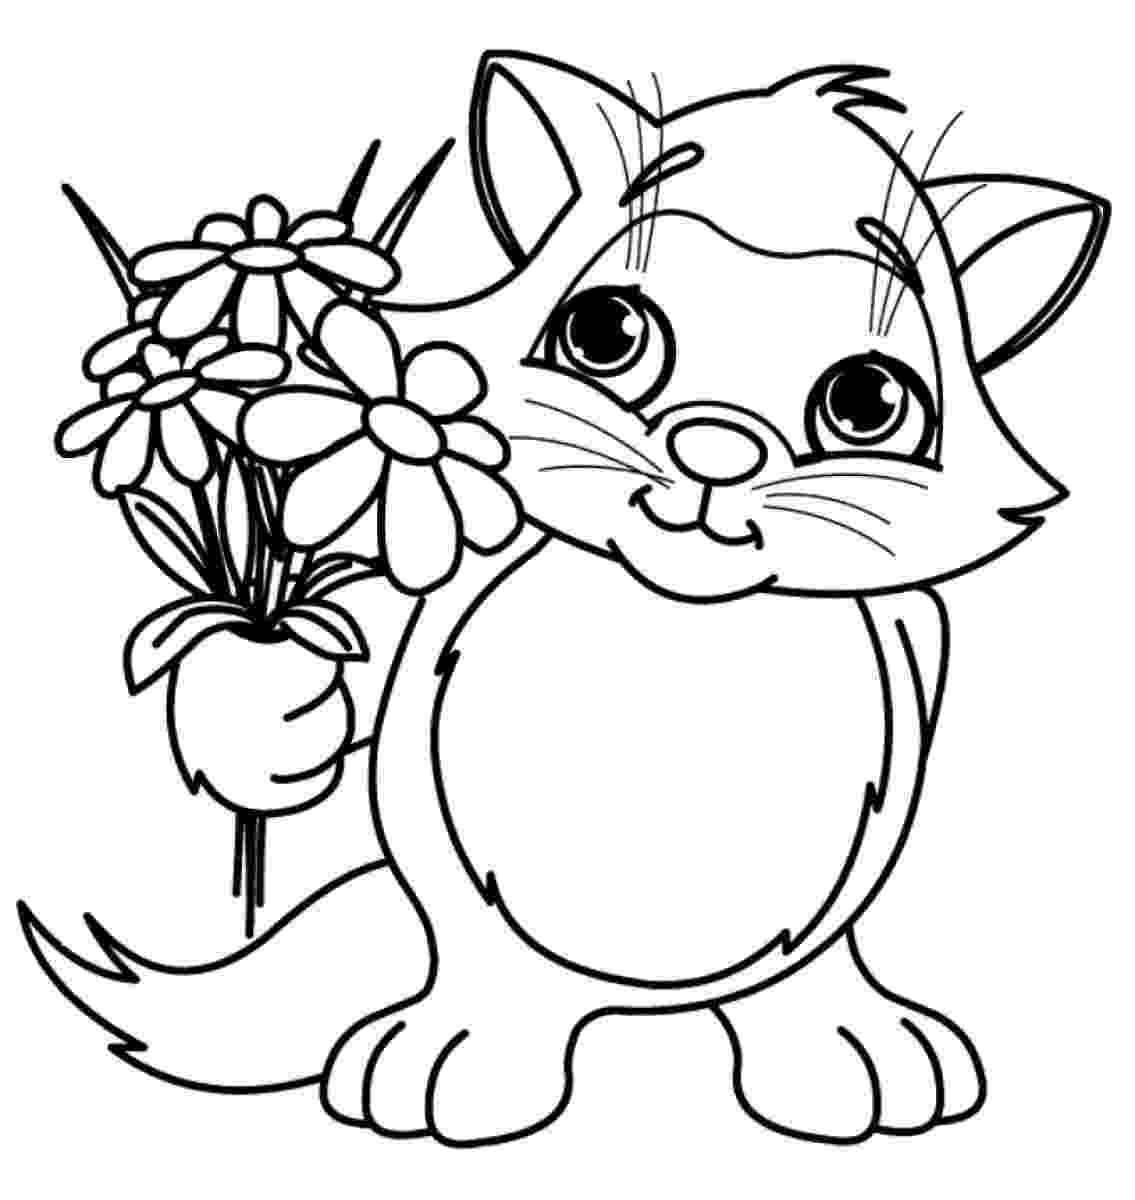 flowers to color print spring flower coloring pages to download and print for free flowers print color to